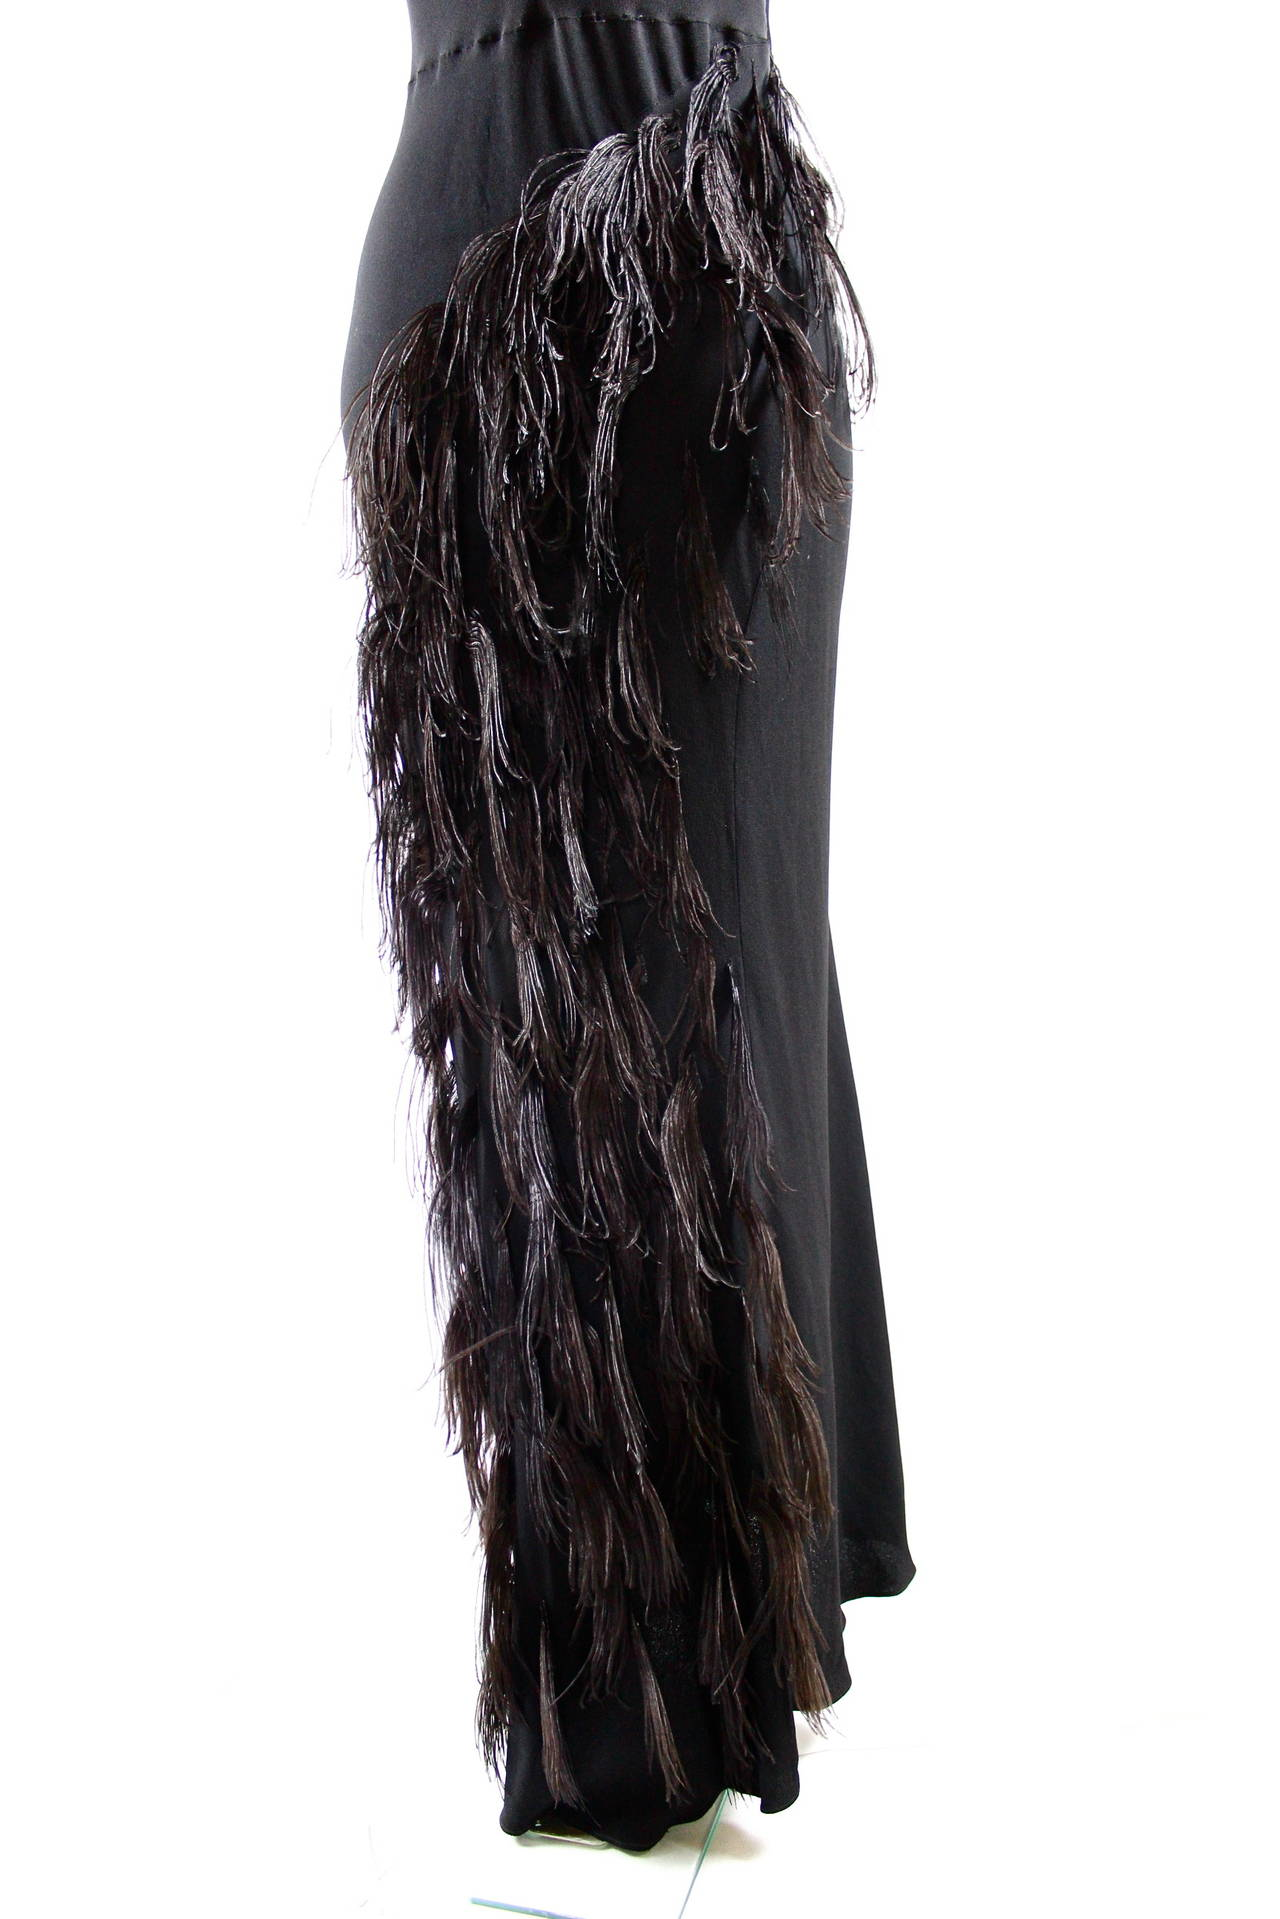 Paquin Couture 1930s Bias Satin Back Crepe and Ostrich Feather Gown 8